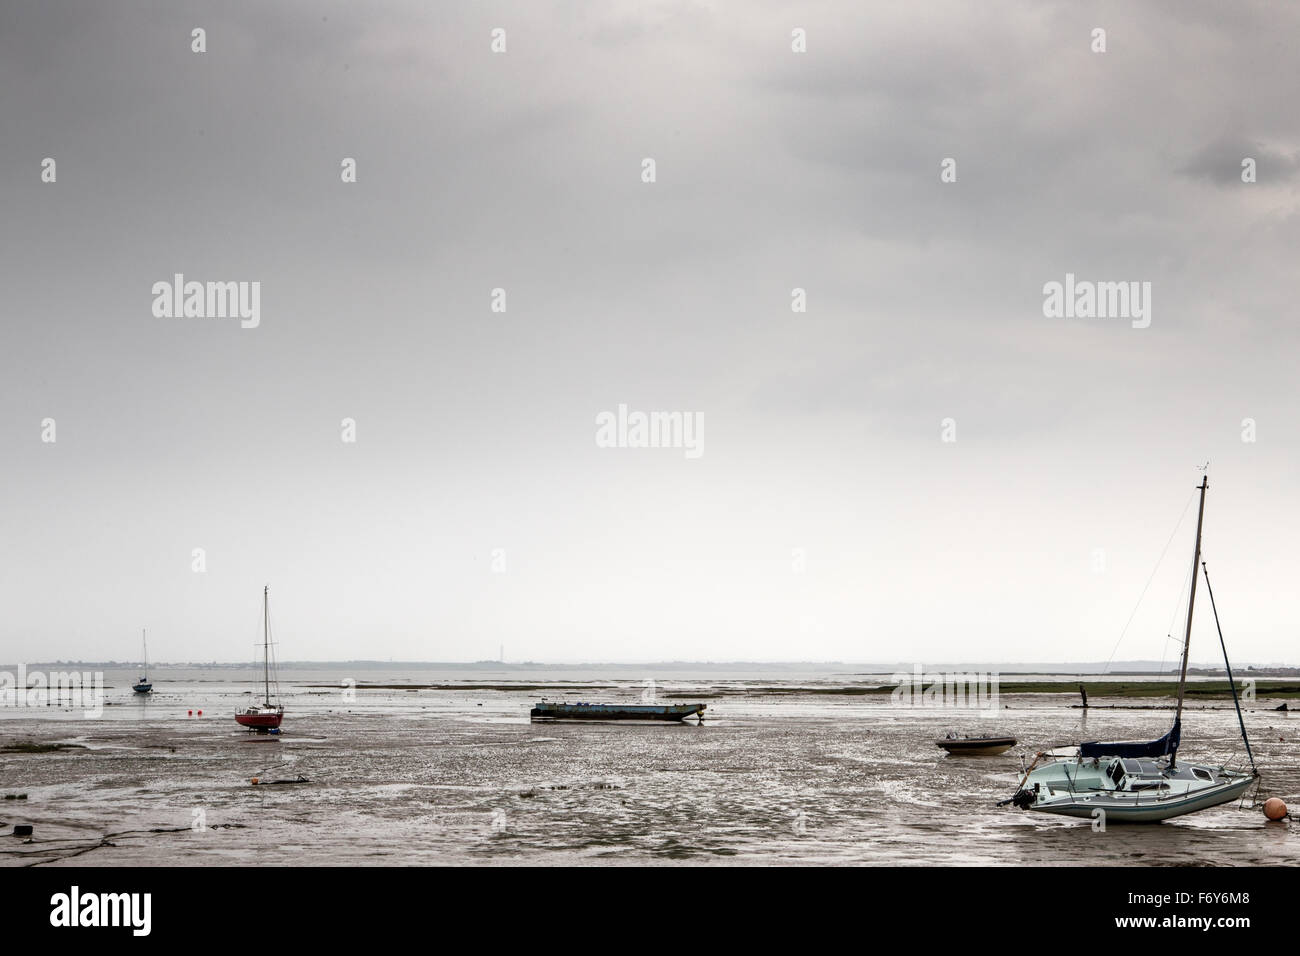 landscape image looking at across the muddy beach of the essex coastline of westcliff on sea in england Stock Photo